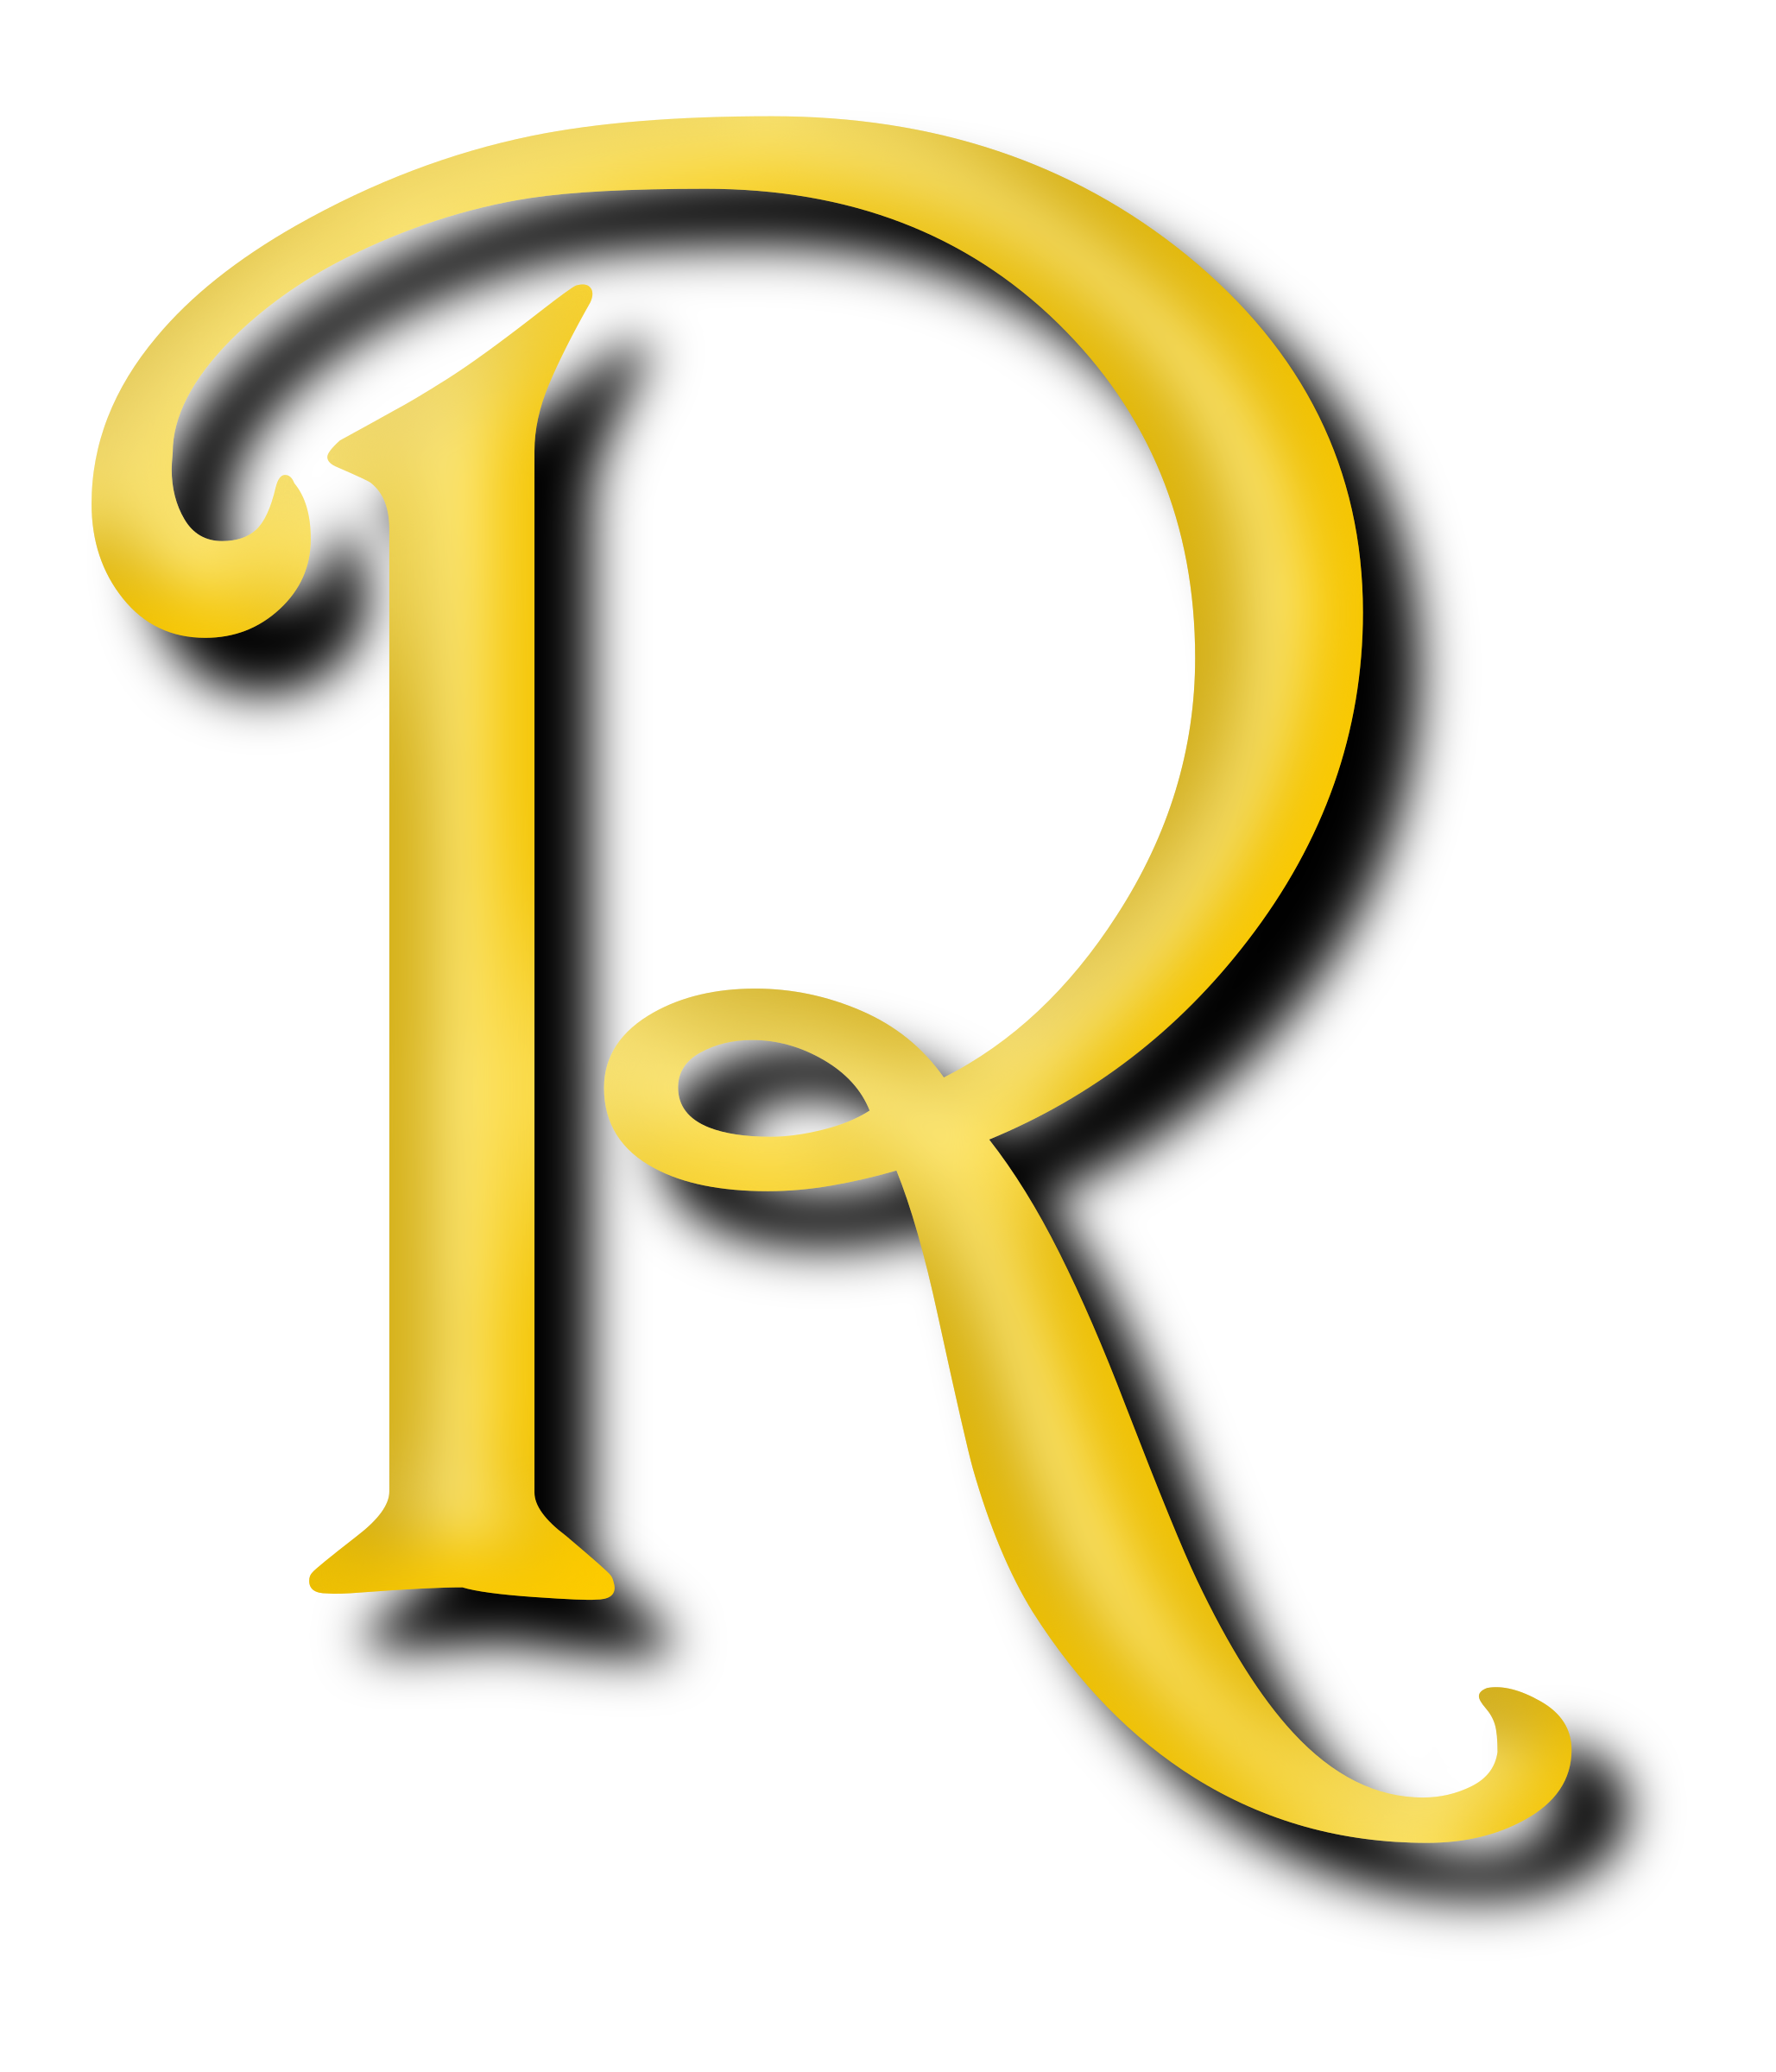 Letter R Png | www.pixshark.com - Images Galleries With A ...